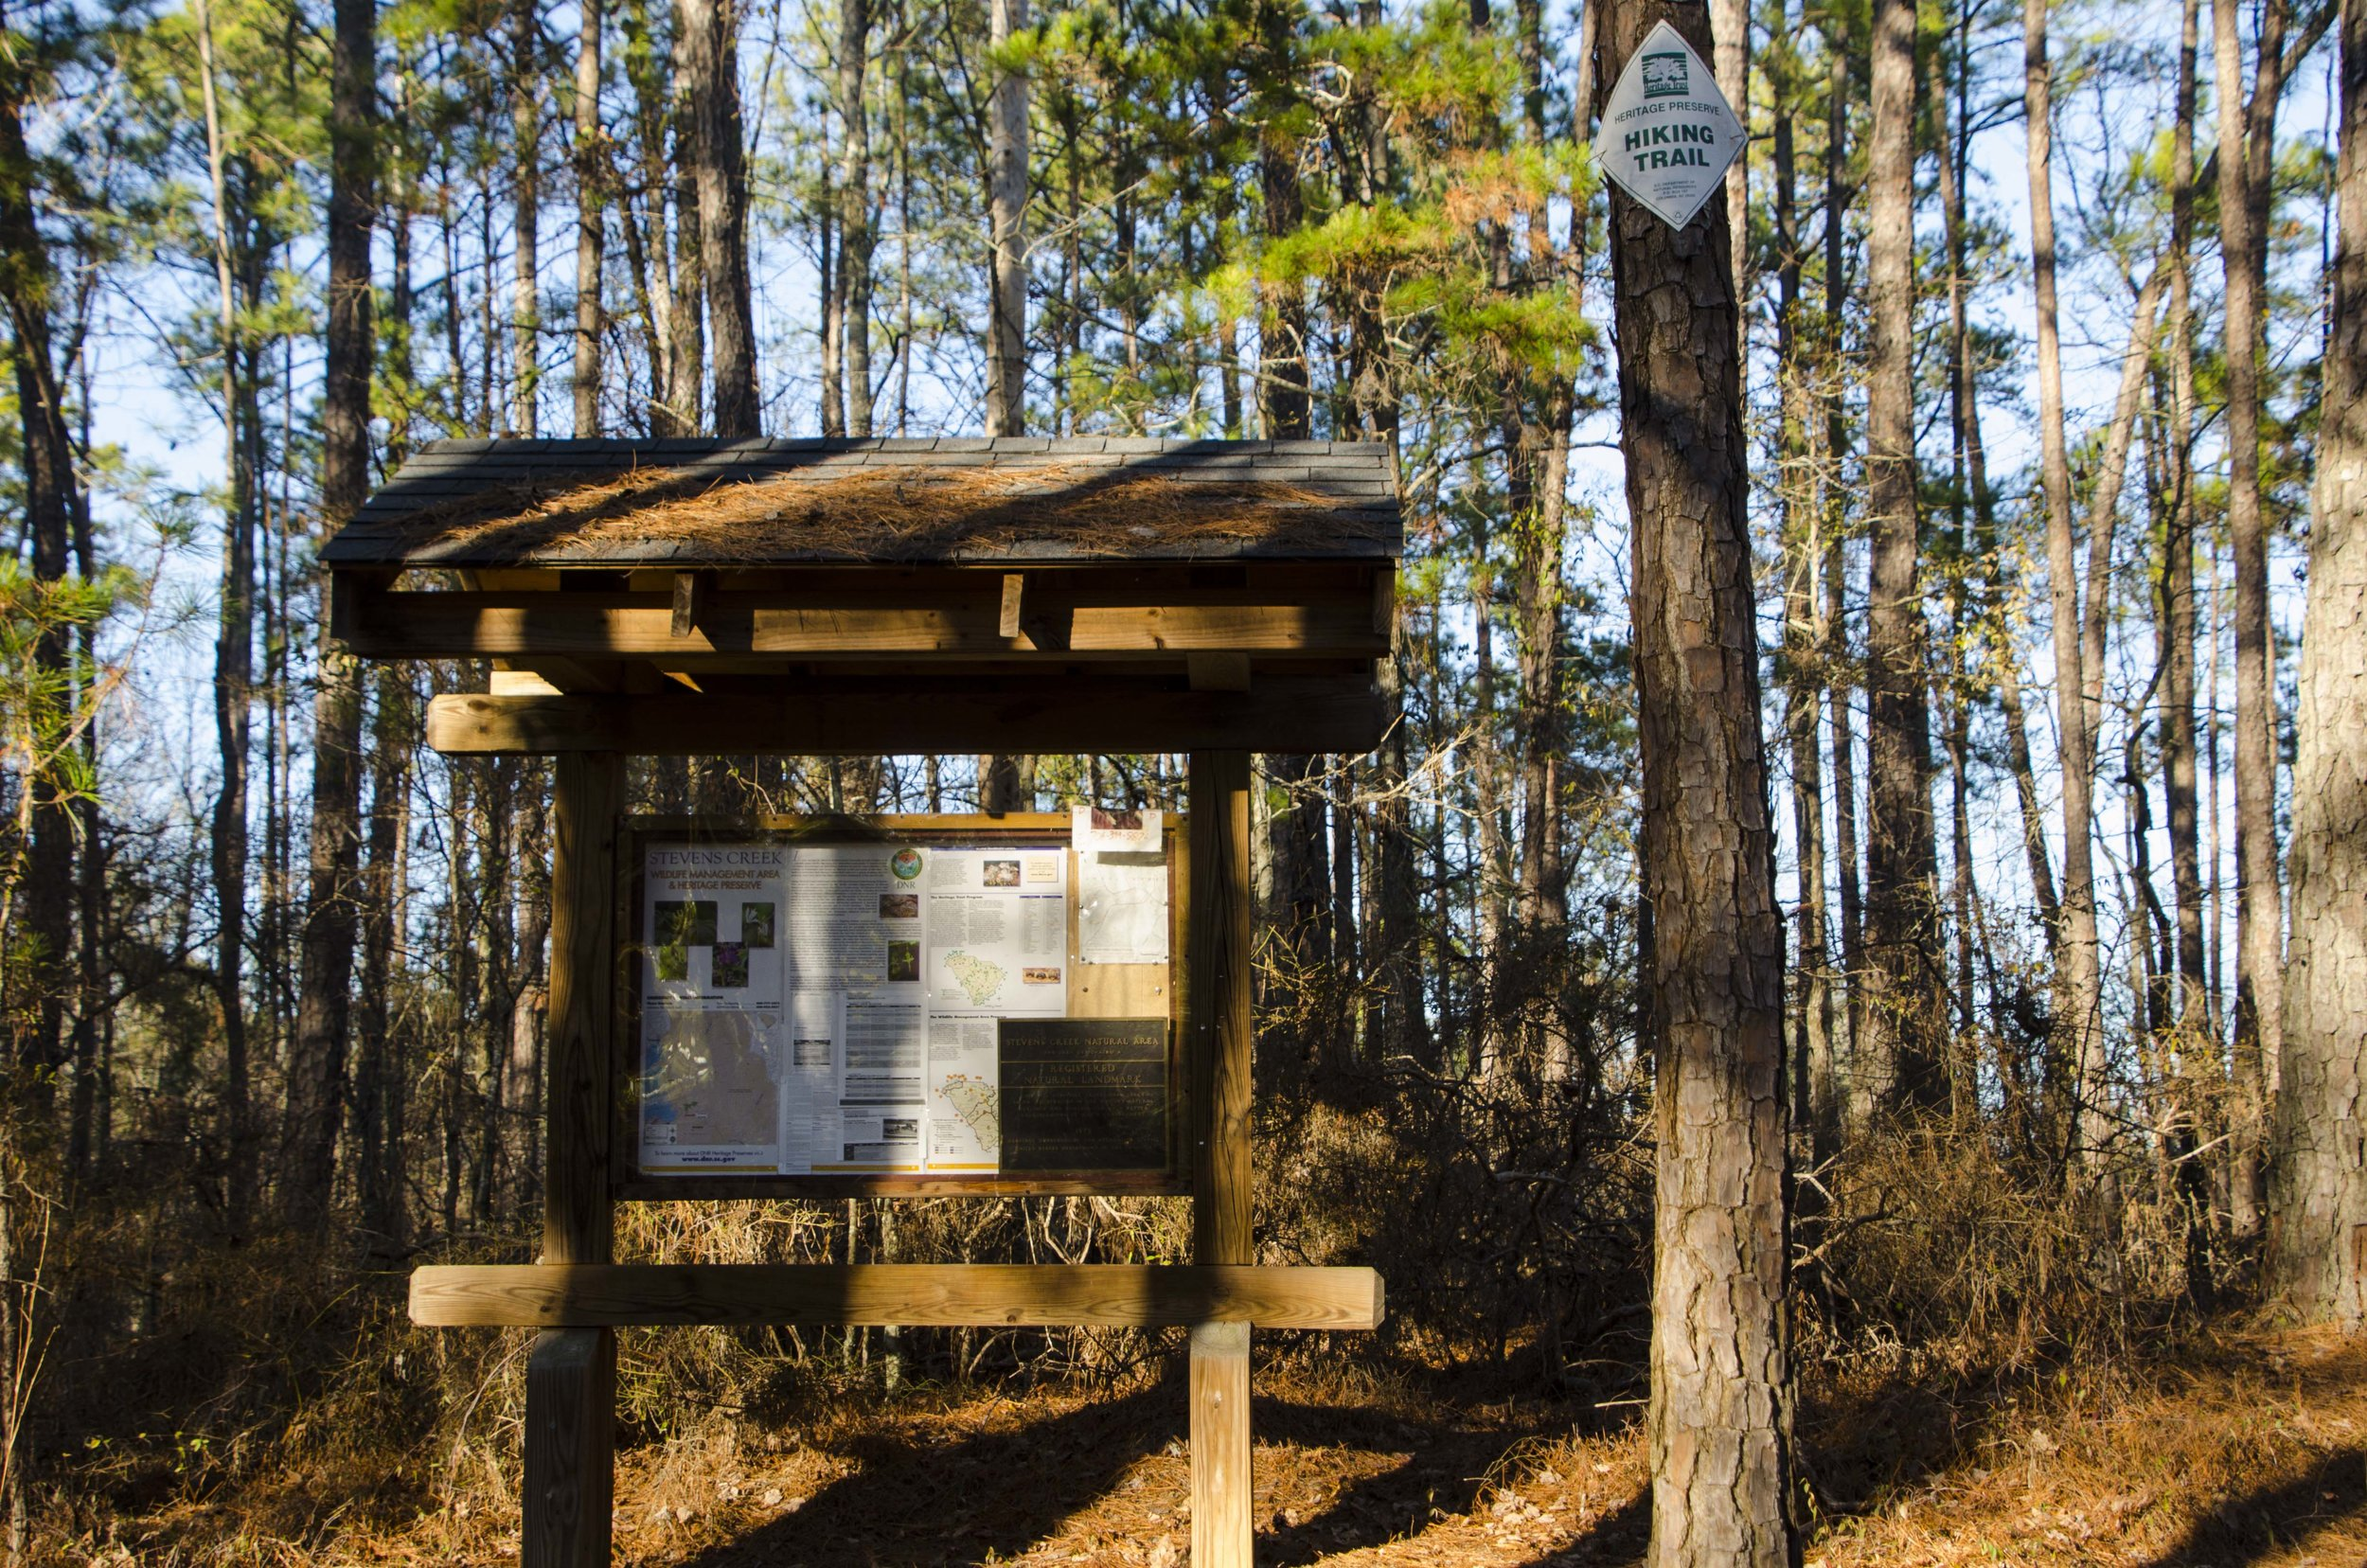 The kiosk at the trailhead is surrounded by a grove of pine trees.SCDNR photo by D. Lucas)